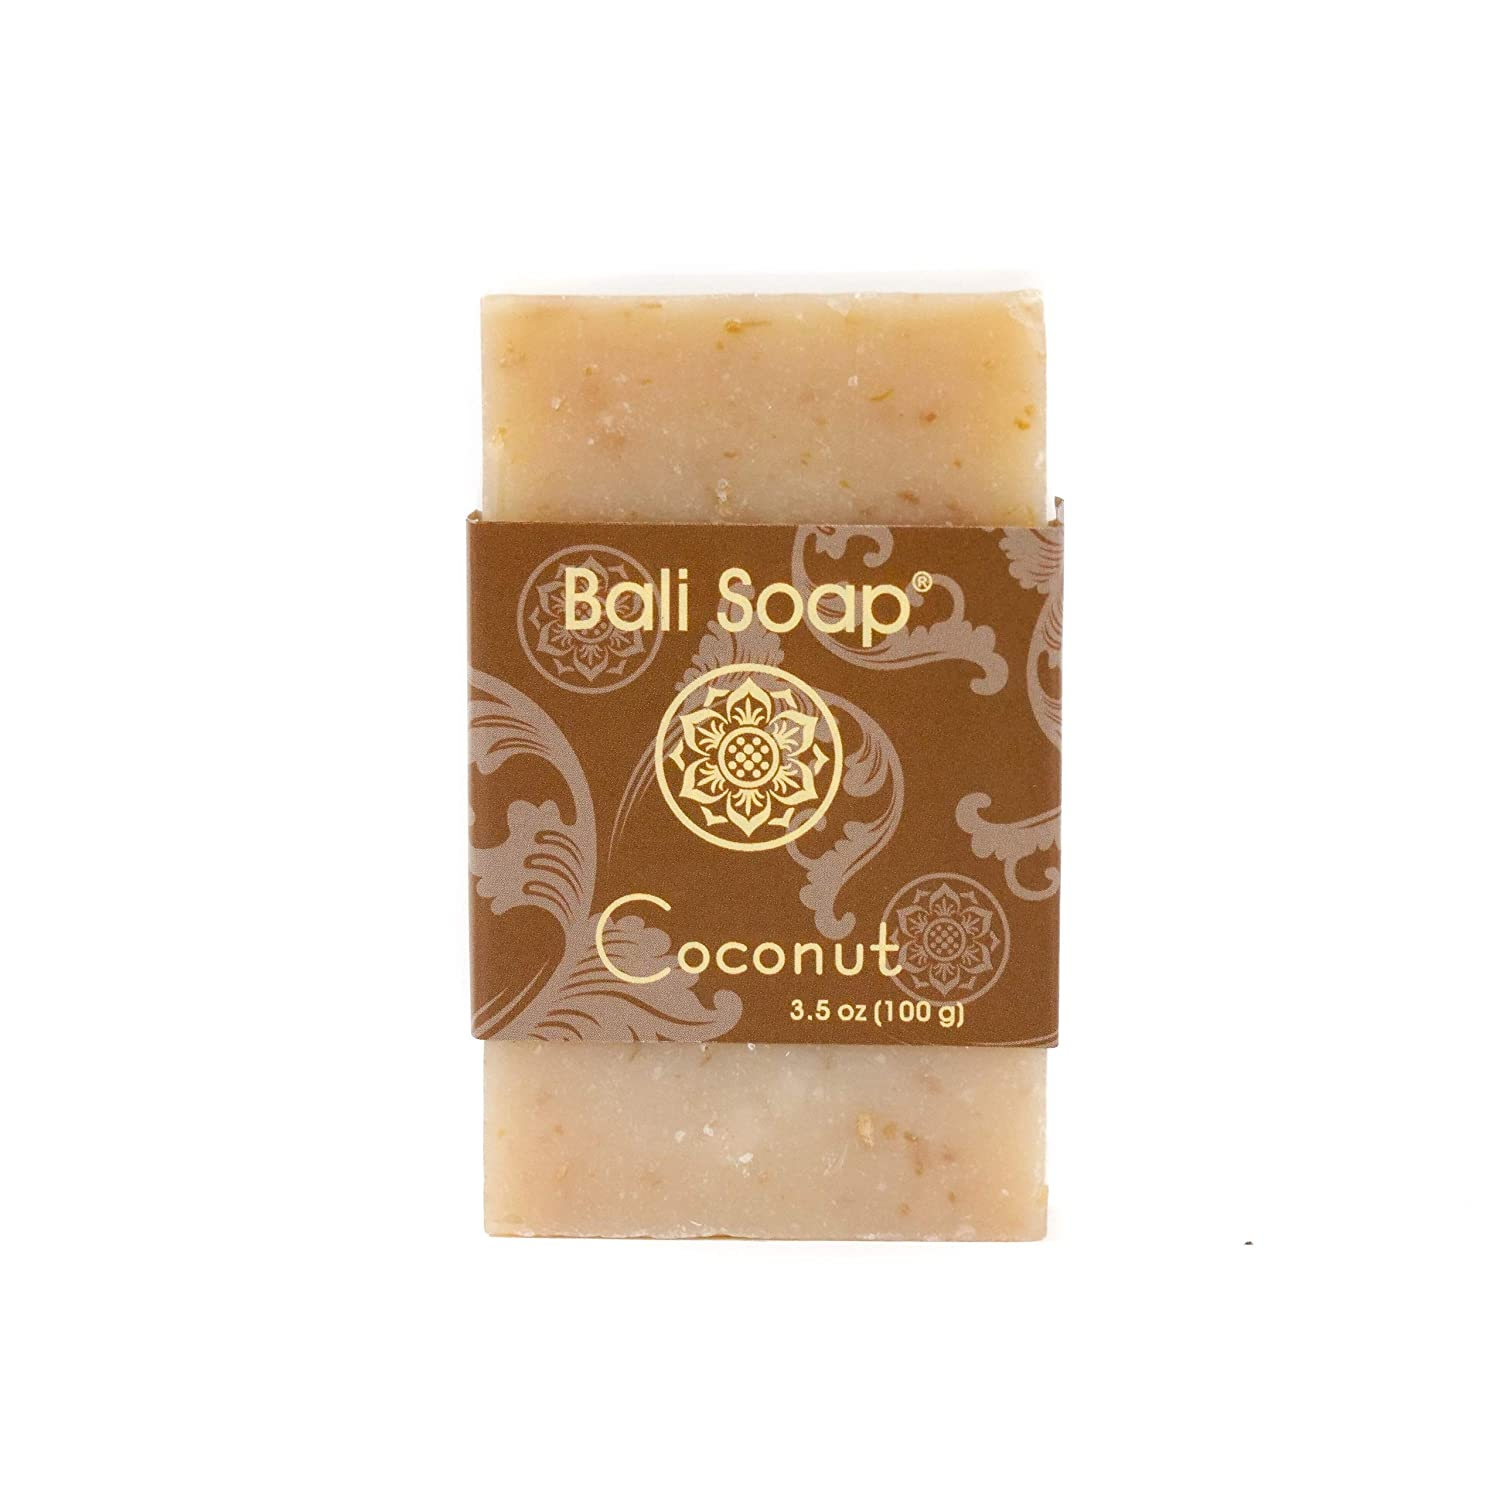 Bali Soap - Coconut Natural Soap Bar, Face or Body Soap Best for All Skin Types, For Women, Men & Teens, Pack of 12, 3.5 Oz each